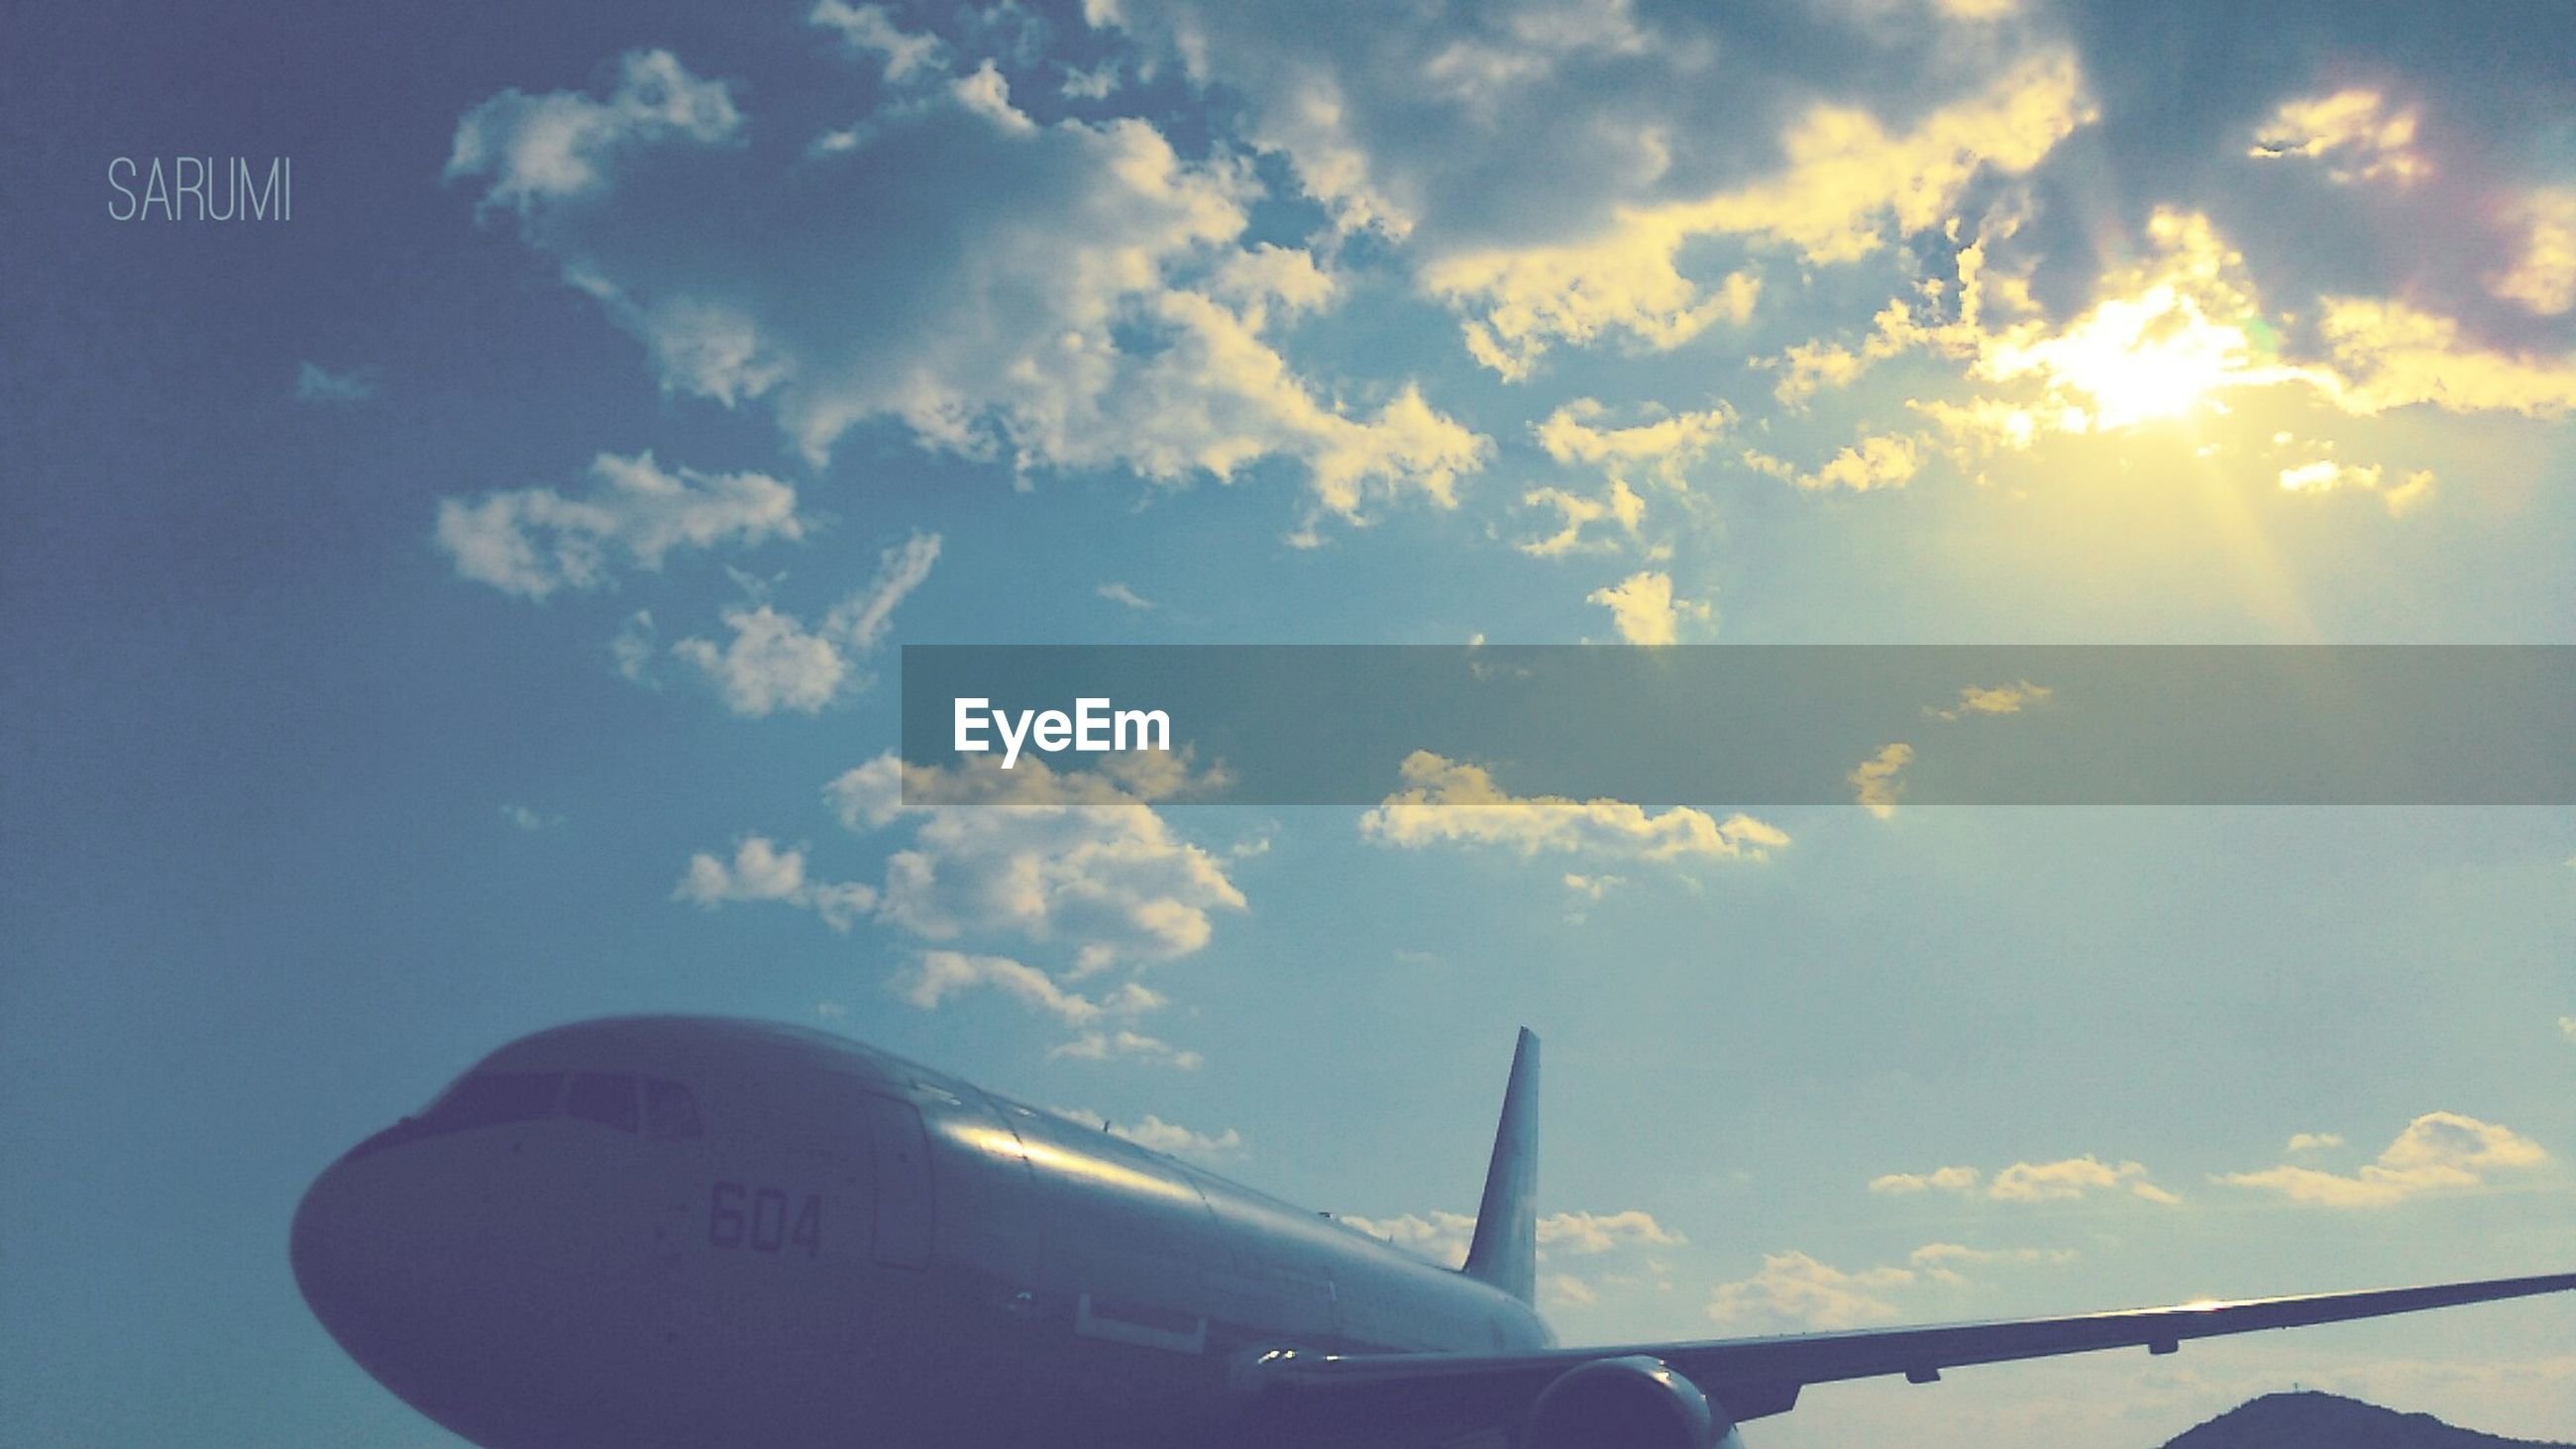 transportation, mode of transport, sky, low angle view, airplane, cloud - sky, air vehicle, part of, cloud, sunlight, cropped, travel, flying, journey, cloudy, aircraft wing, outdoors, sun, day, on the move